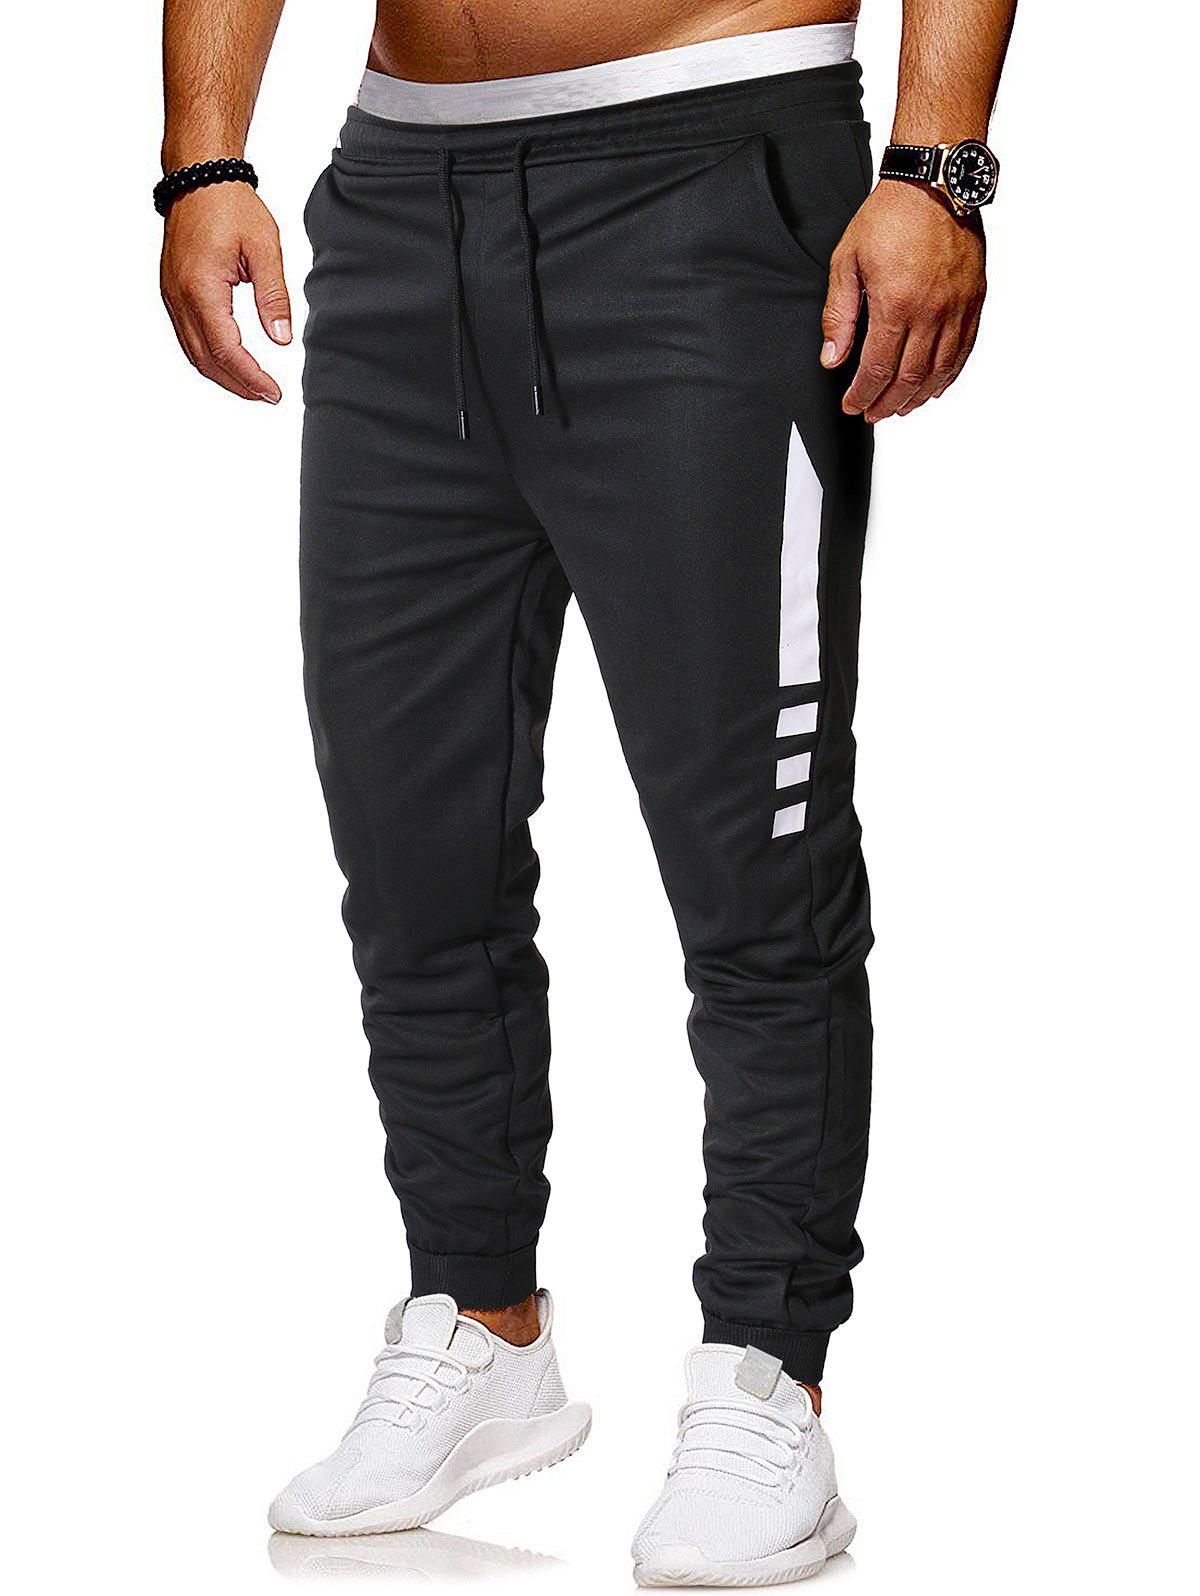 Pantalon de Jogging à Cordon Design